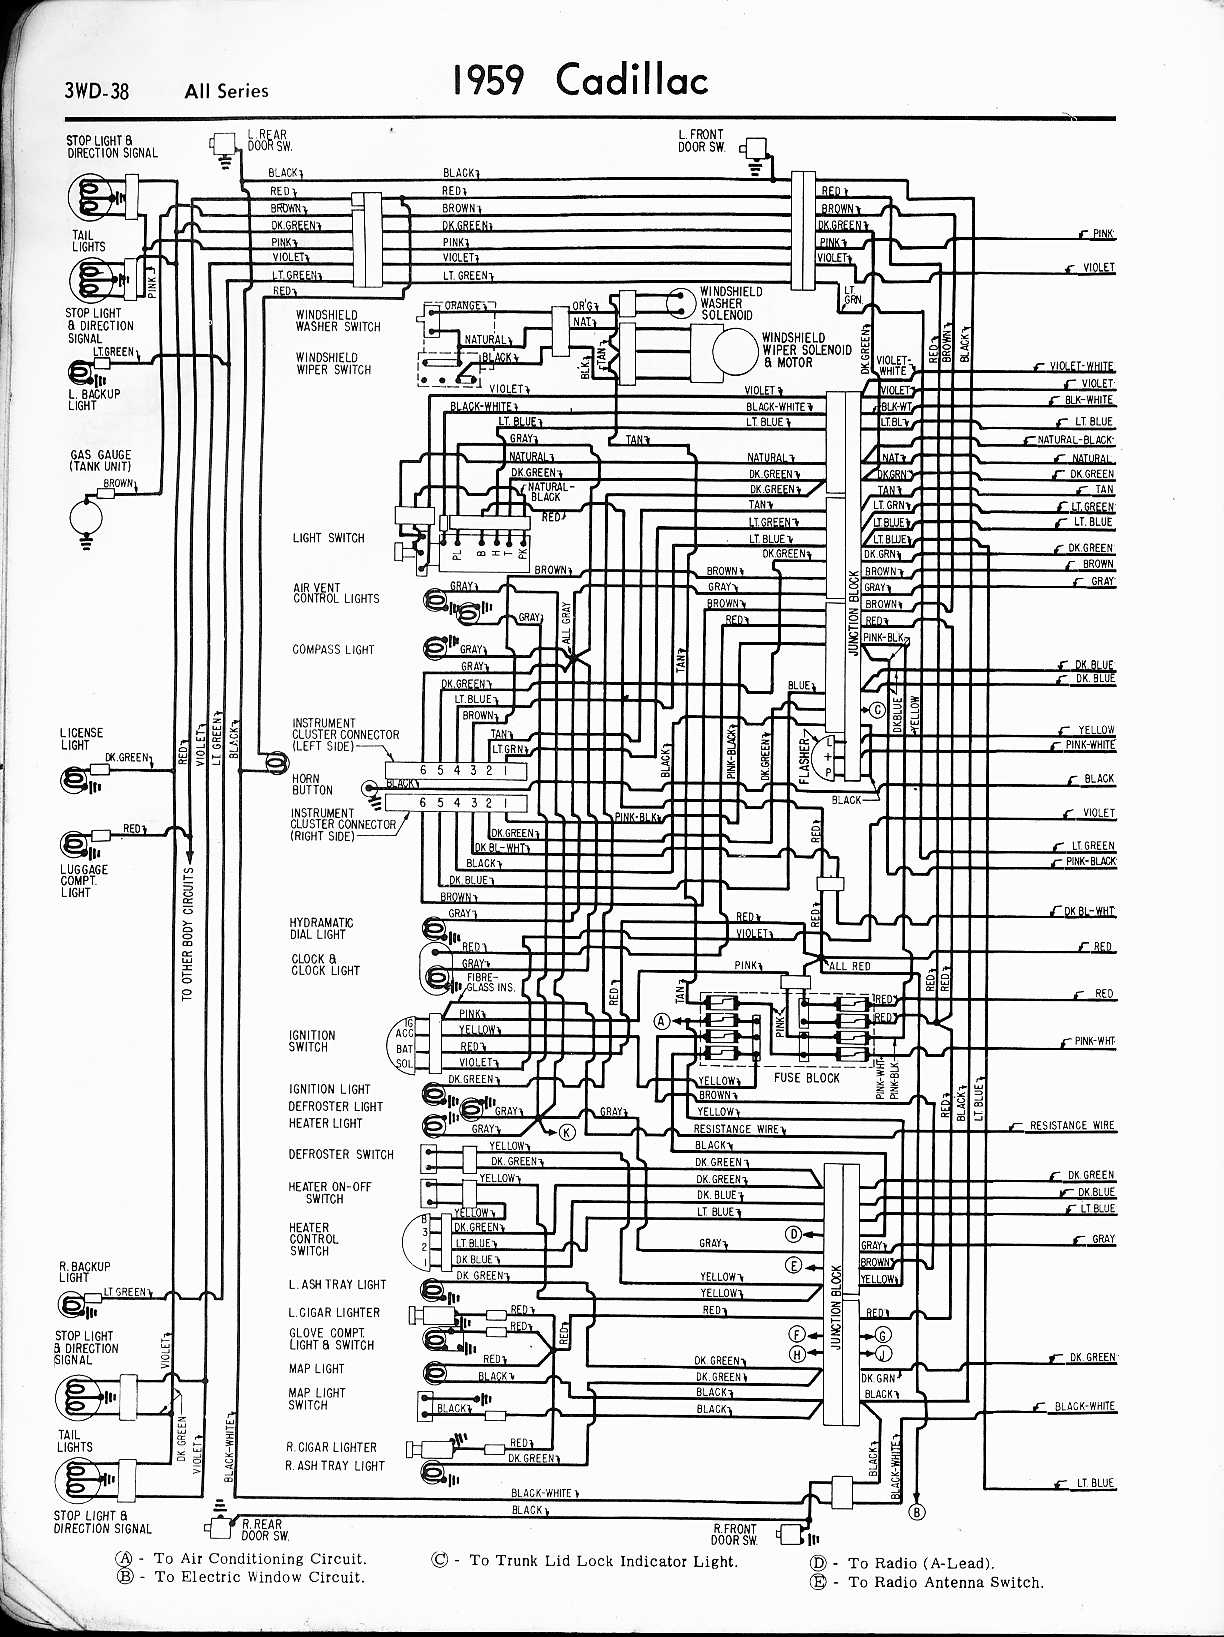 Cadillac Wiring Schematics Expert Category Circuit Diagram Free Download 5 Way Diagrams 1957 1965 Rh Oldcarmanualproject Com